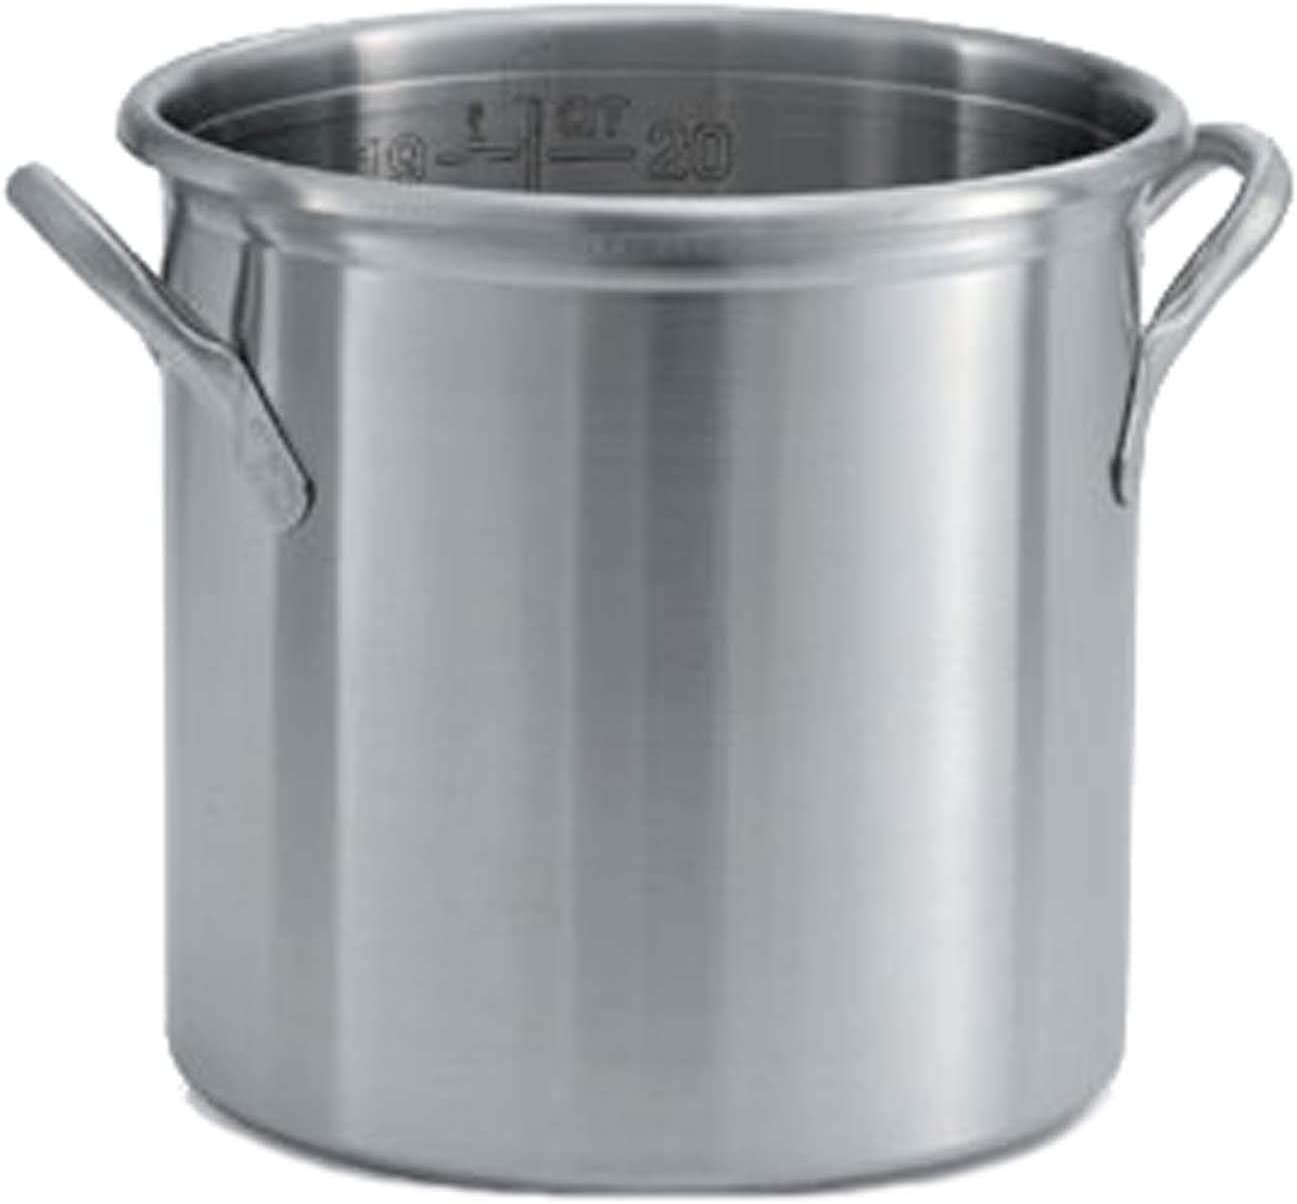 Online limited product Vollrath 77620 Tri-Ply S 24 Lid Stock Quart Max 51% OFF Pot without